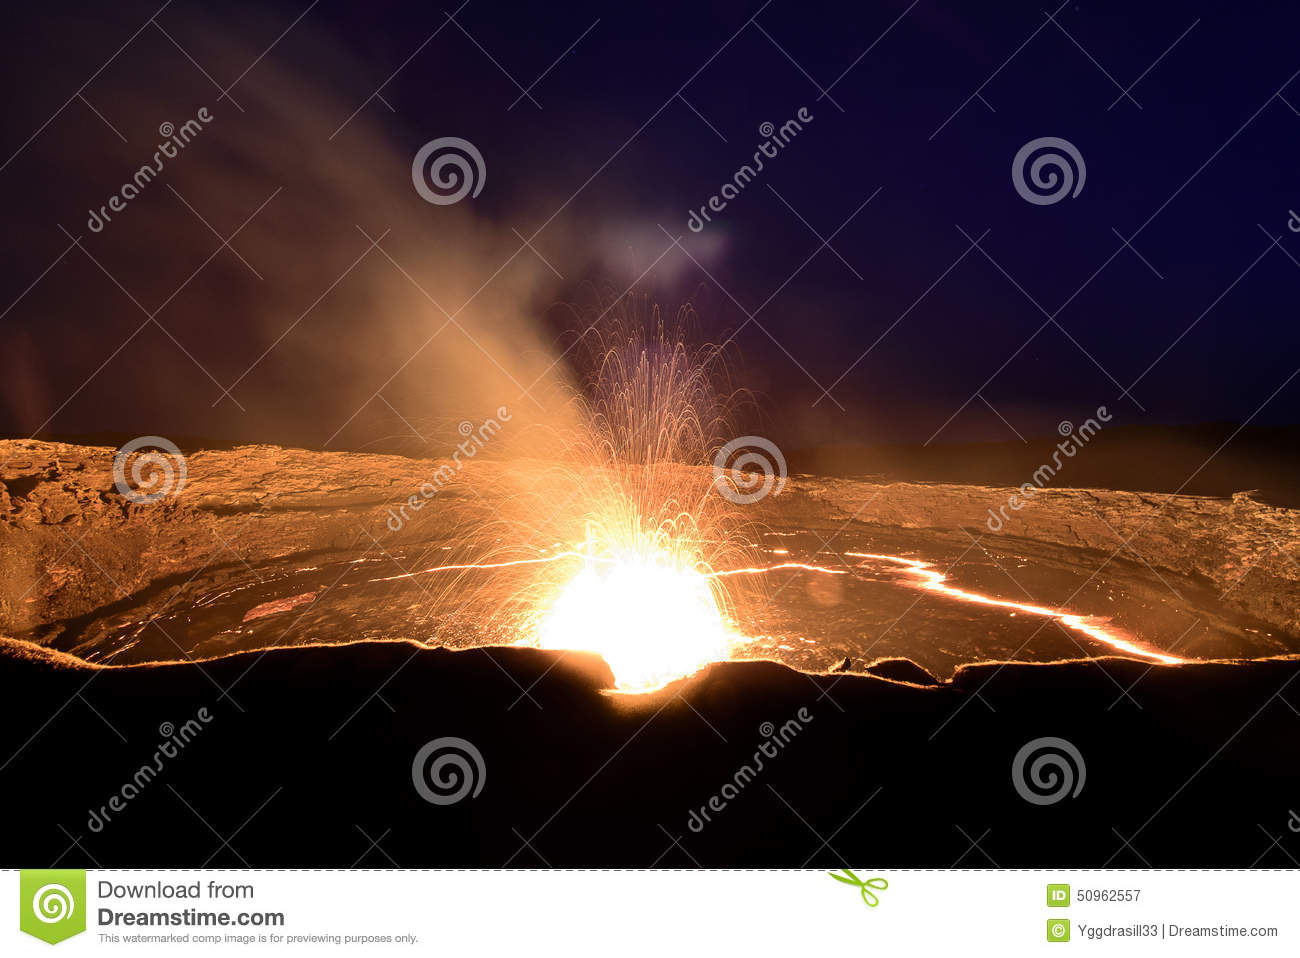 Eruption at the lava lake of the Erta Ale